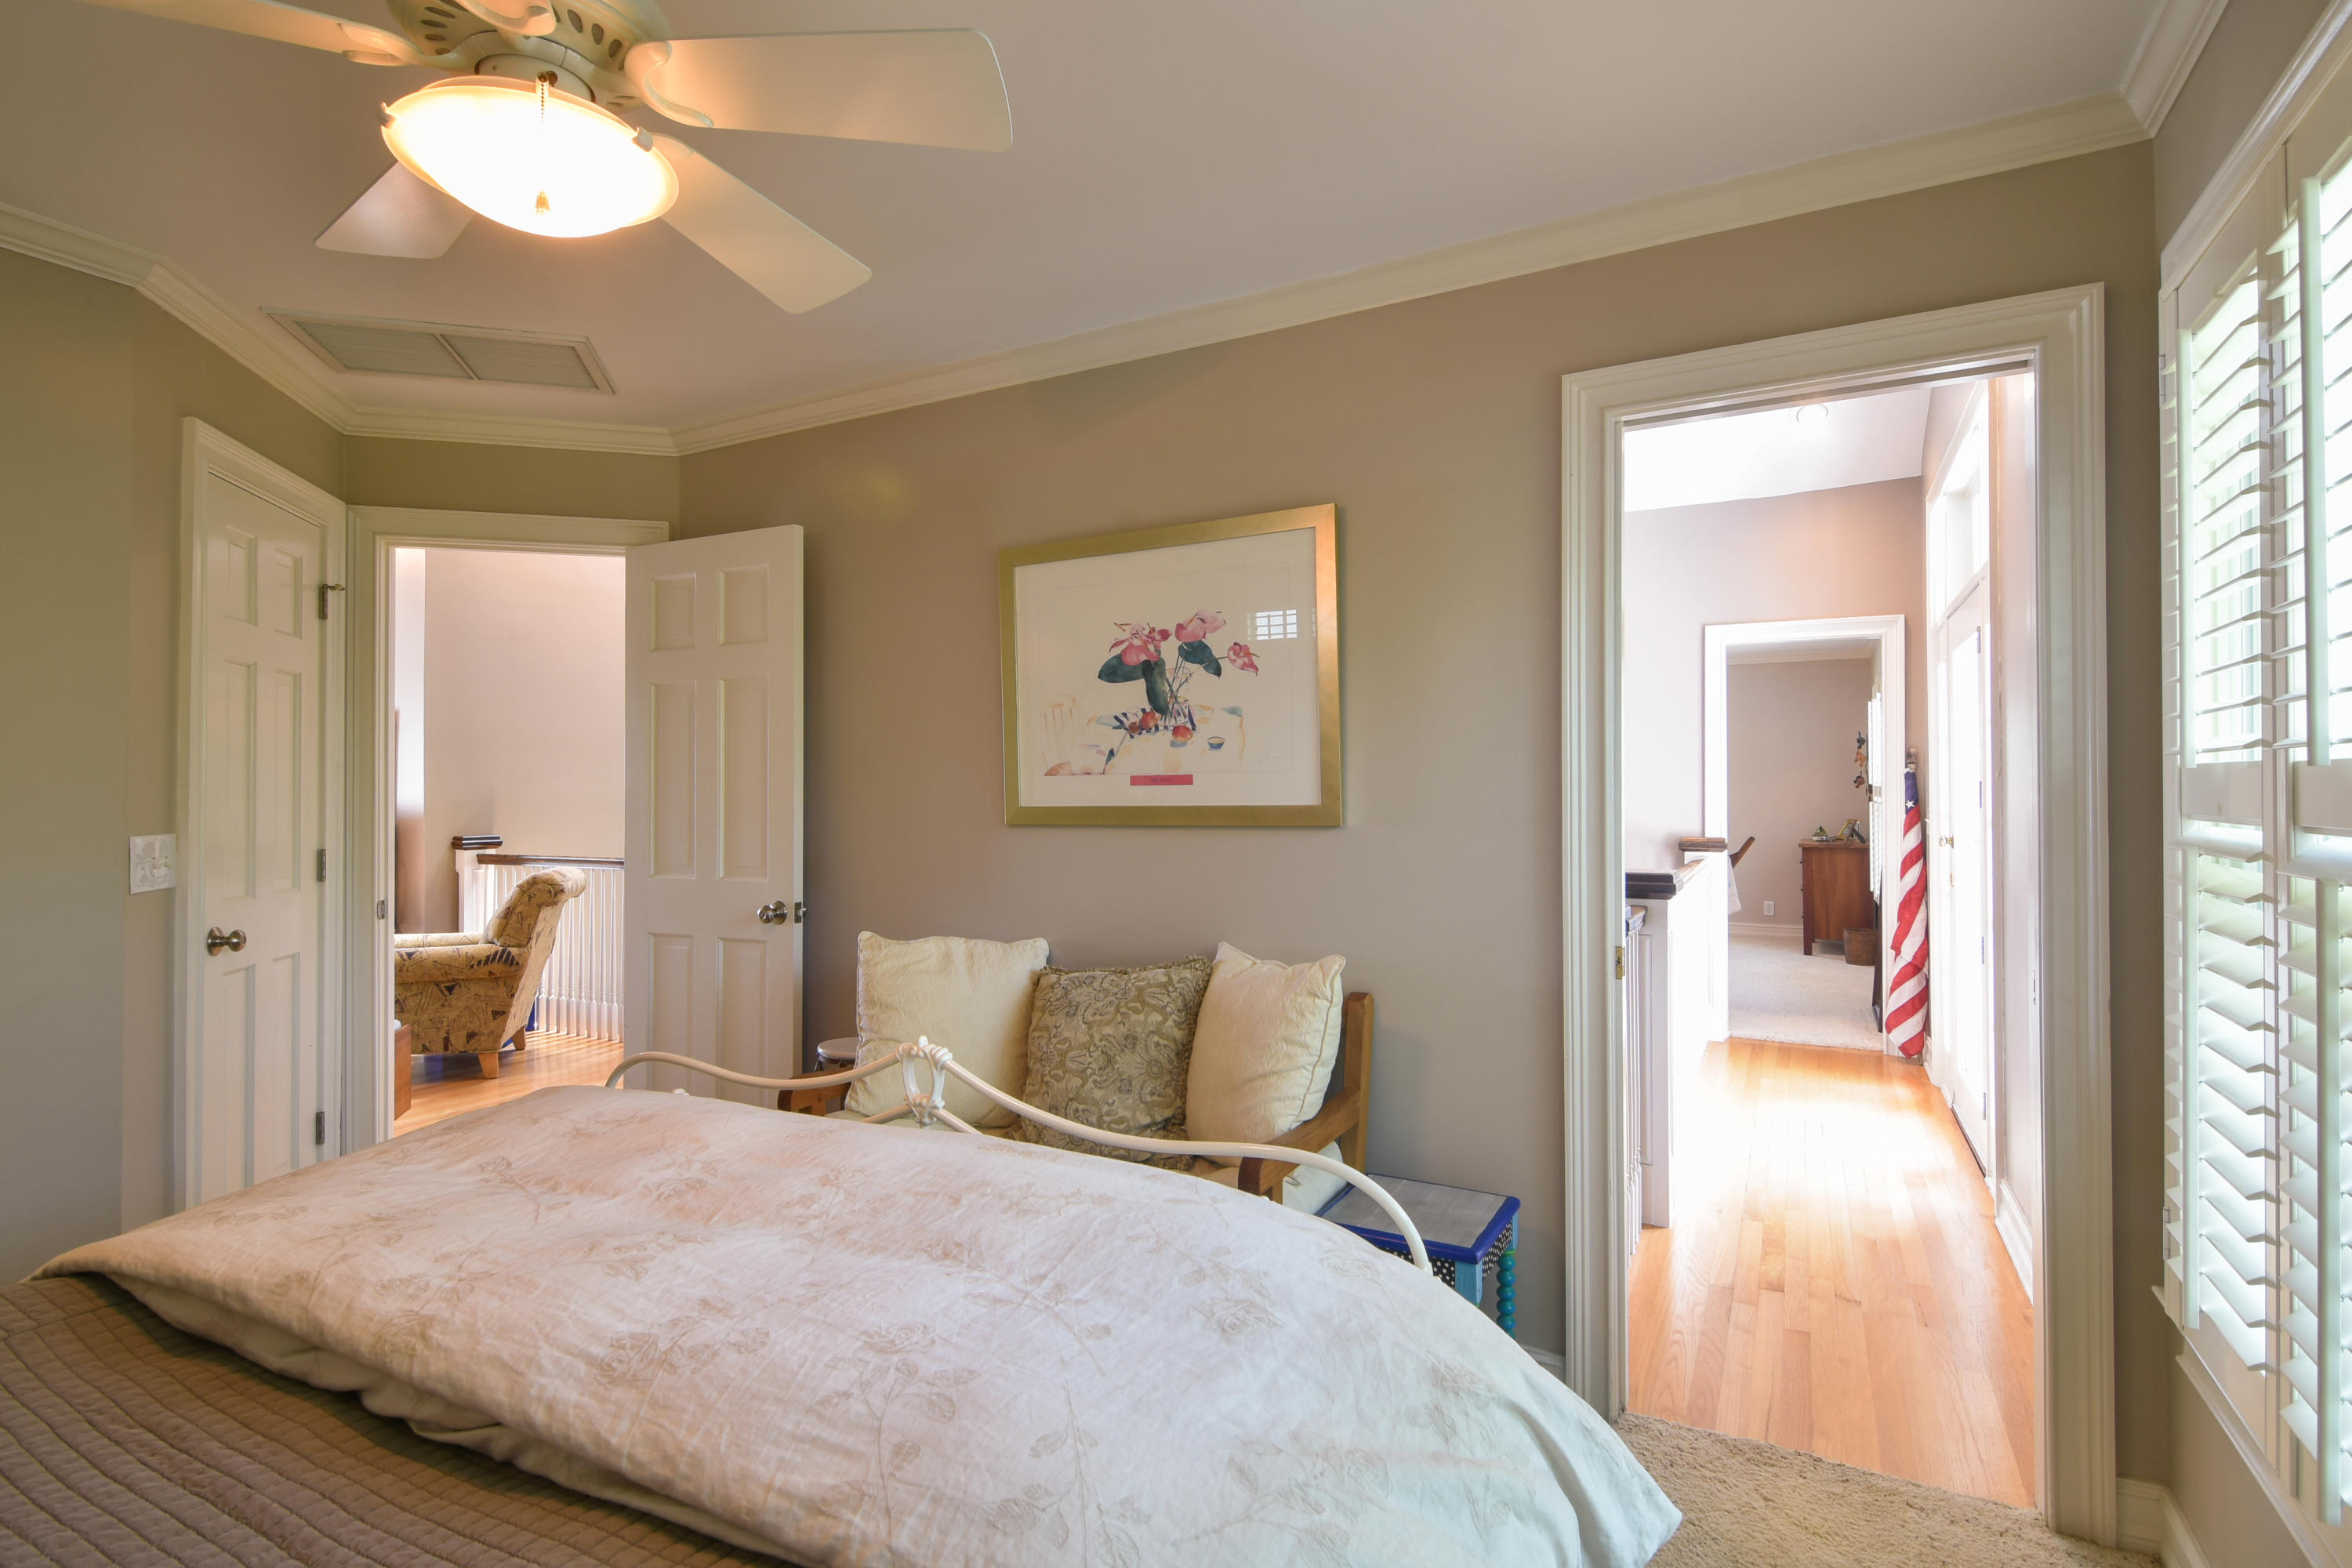 Sullivans Island Homes For Sale - 405 Station 12, Sullivans Island, SC - 76